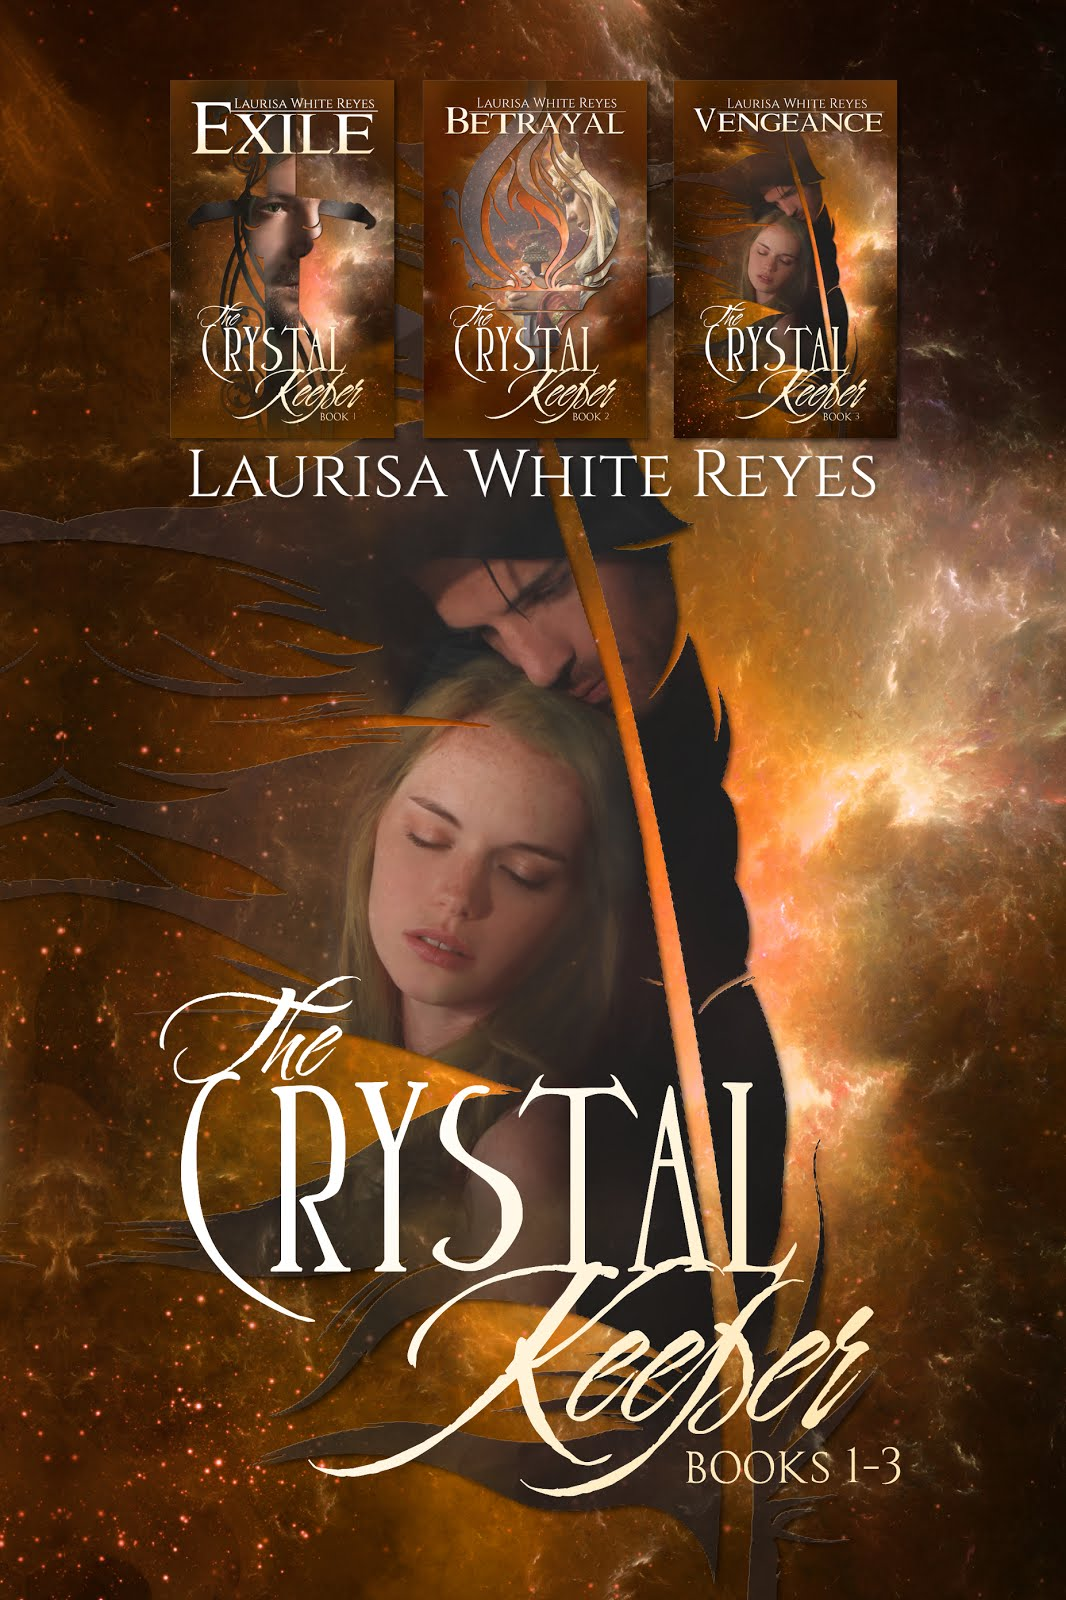 Subscribe to my newsletter & get THE CRYSTAL KEEPER OMNIBUS for FREE!